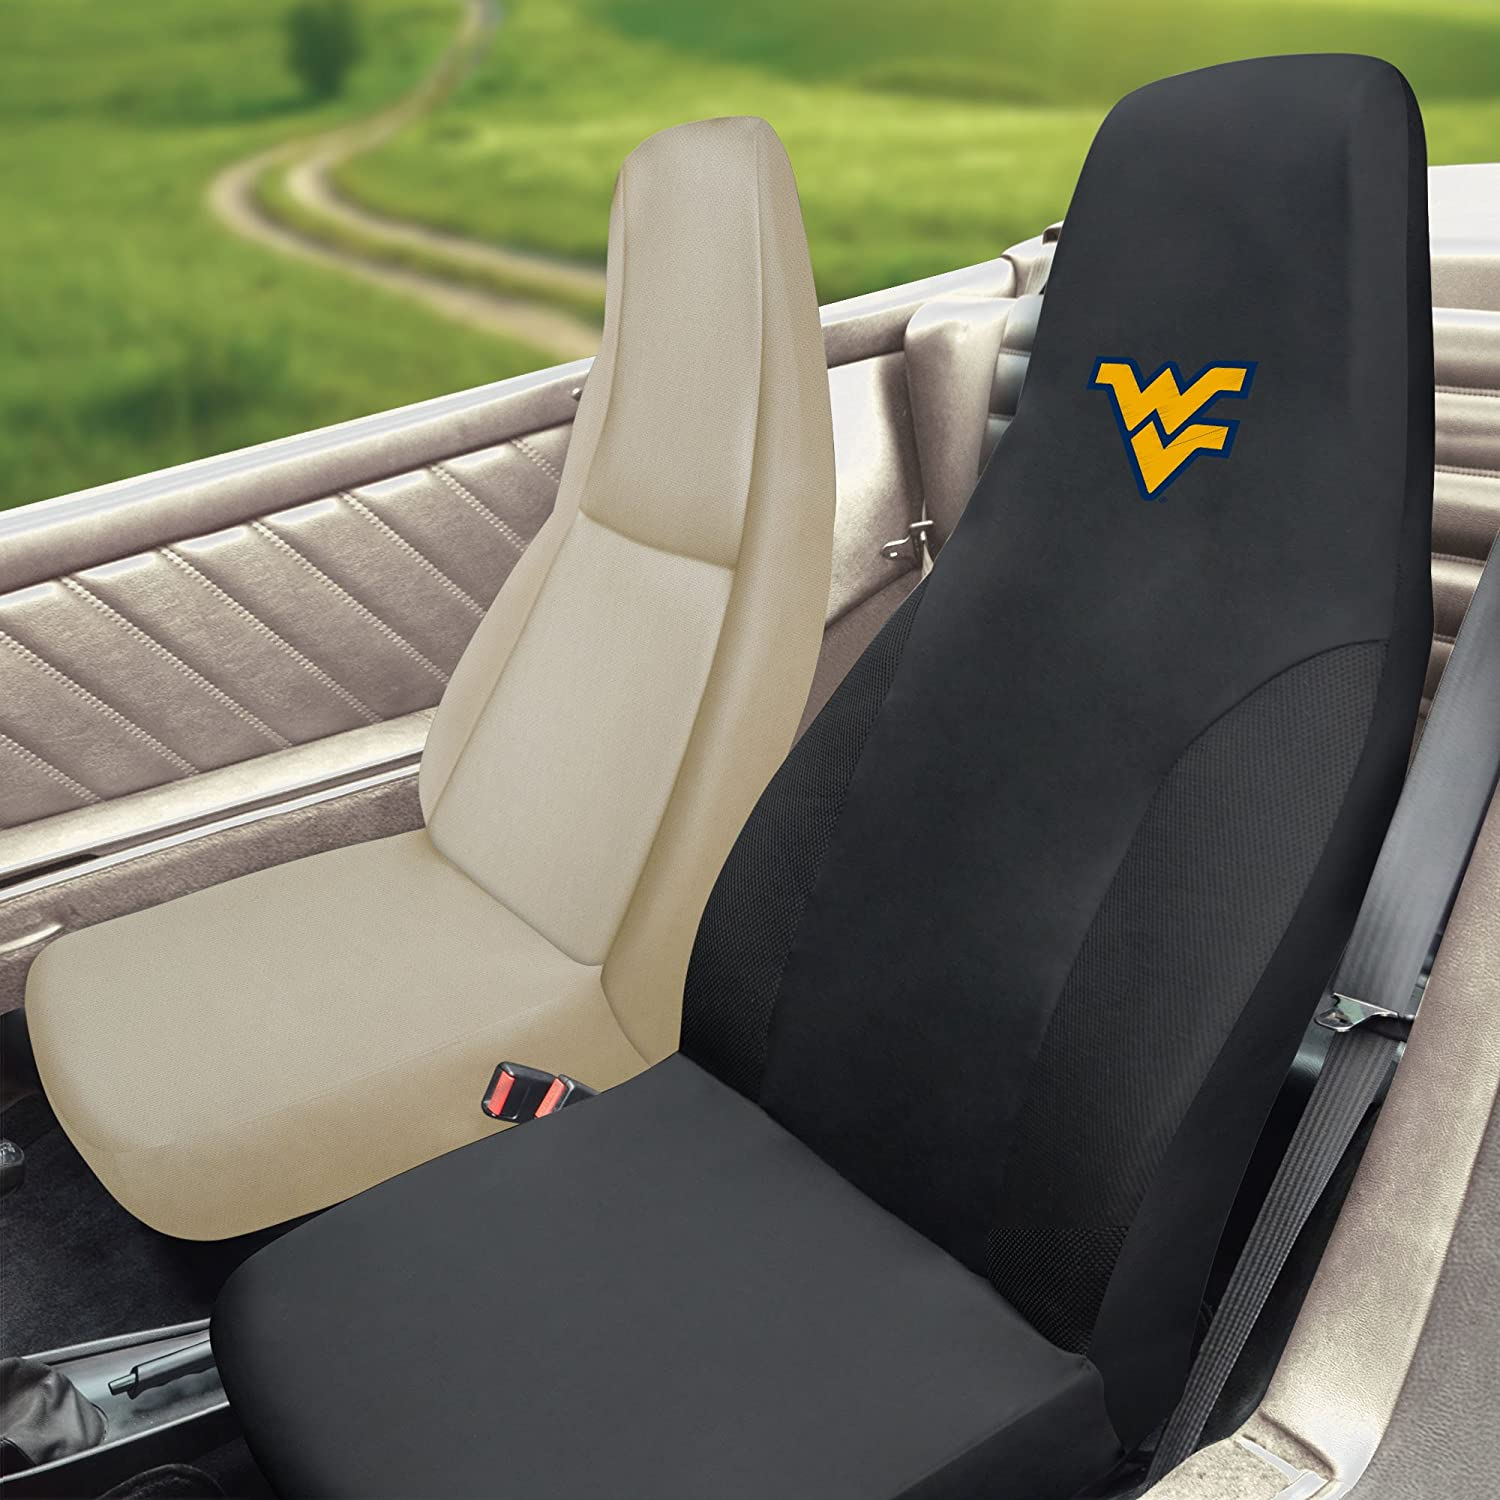 FANMATS NCAA West Virginia University Mountaineers Polyester Seat Cover 15053